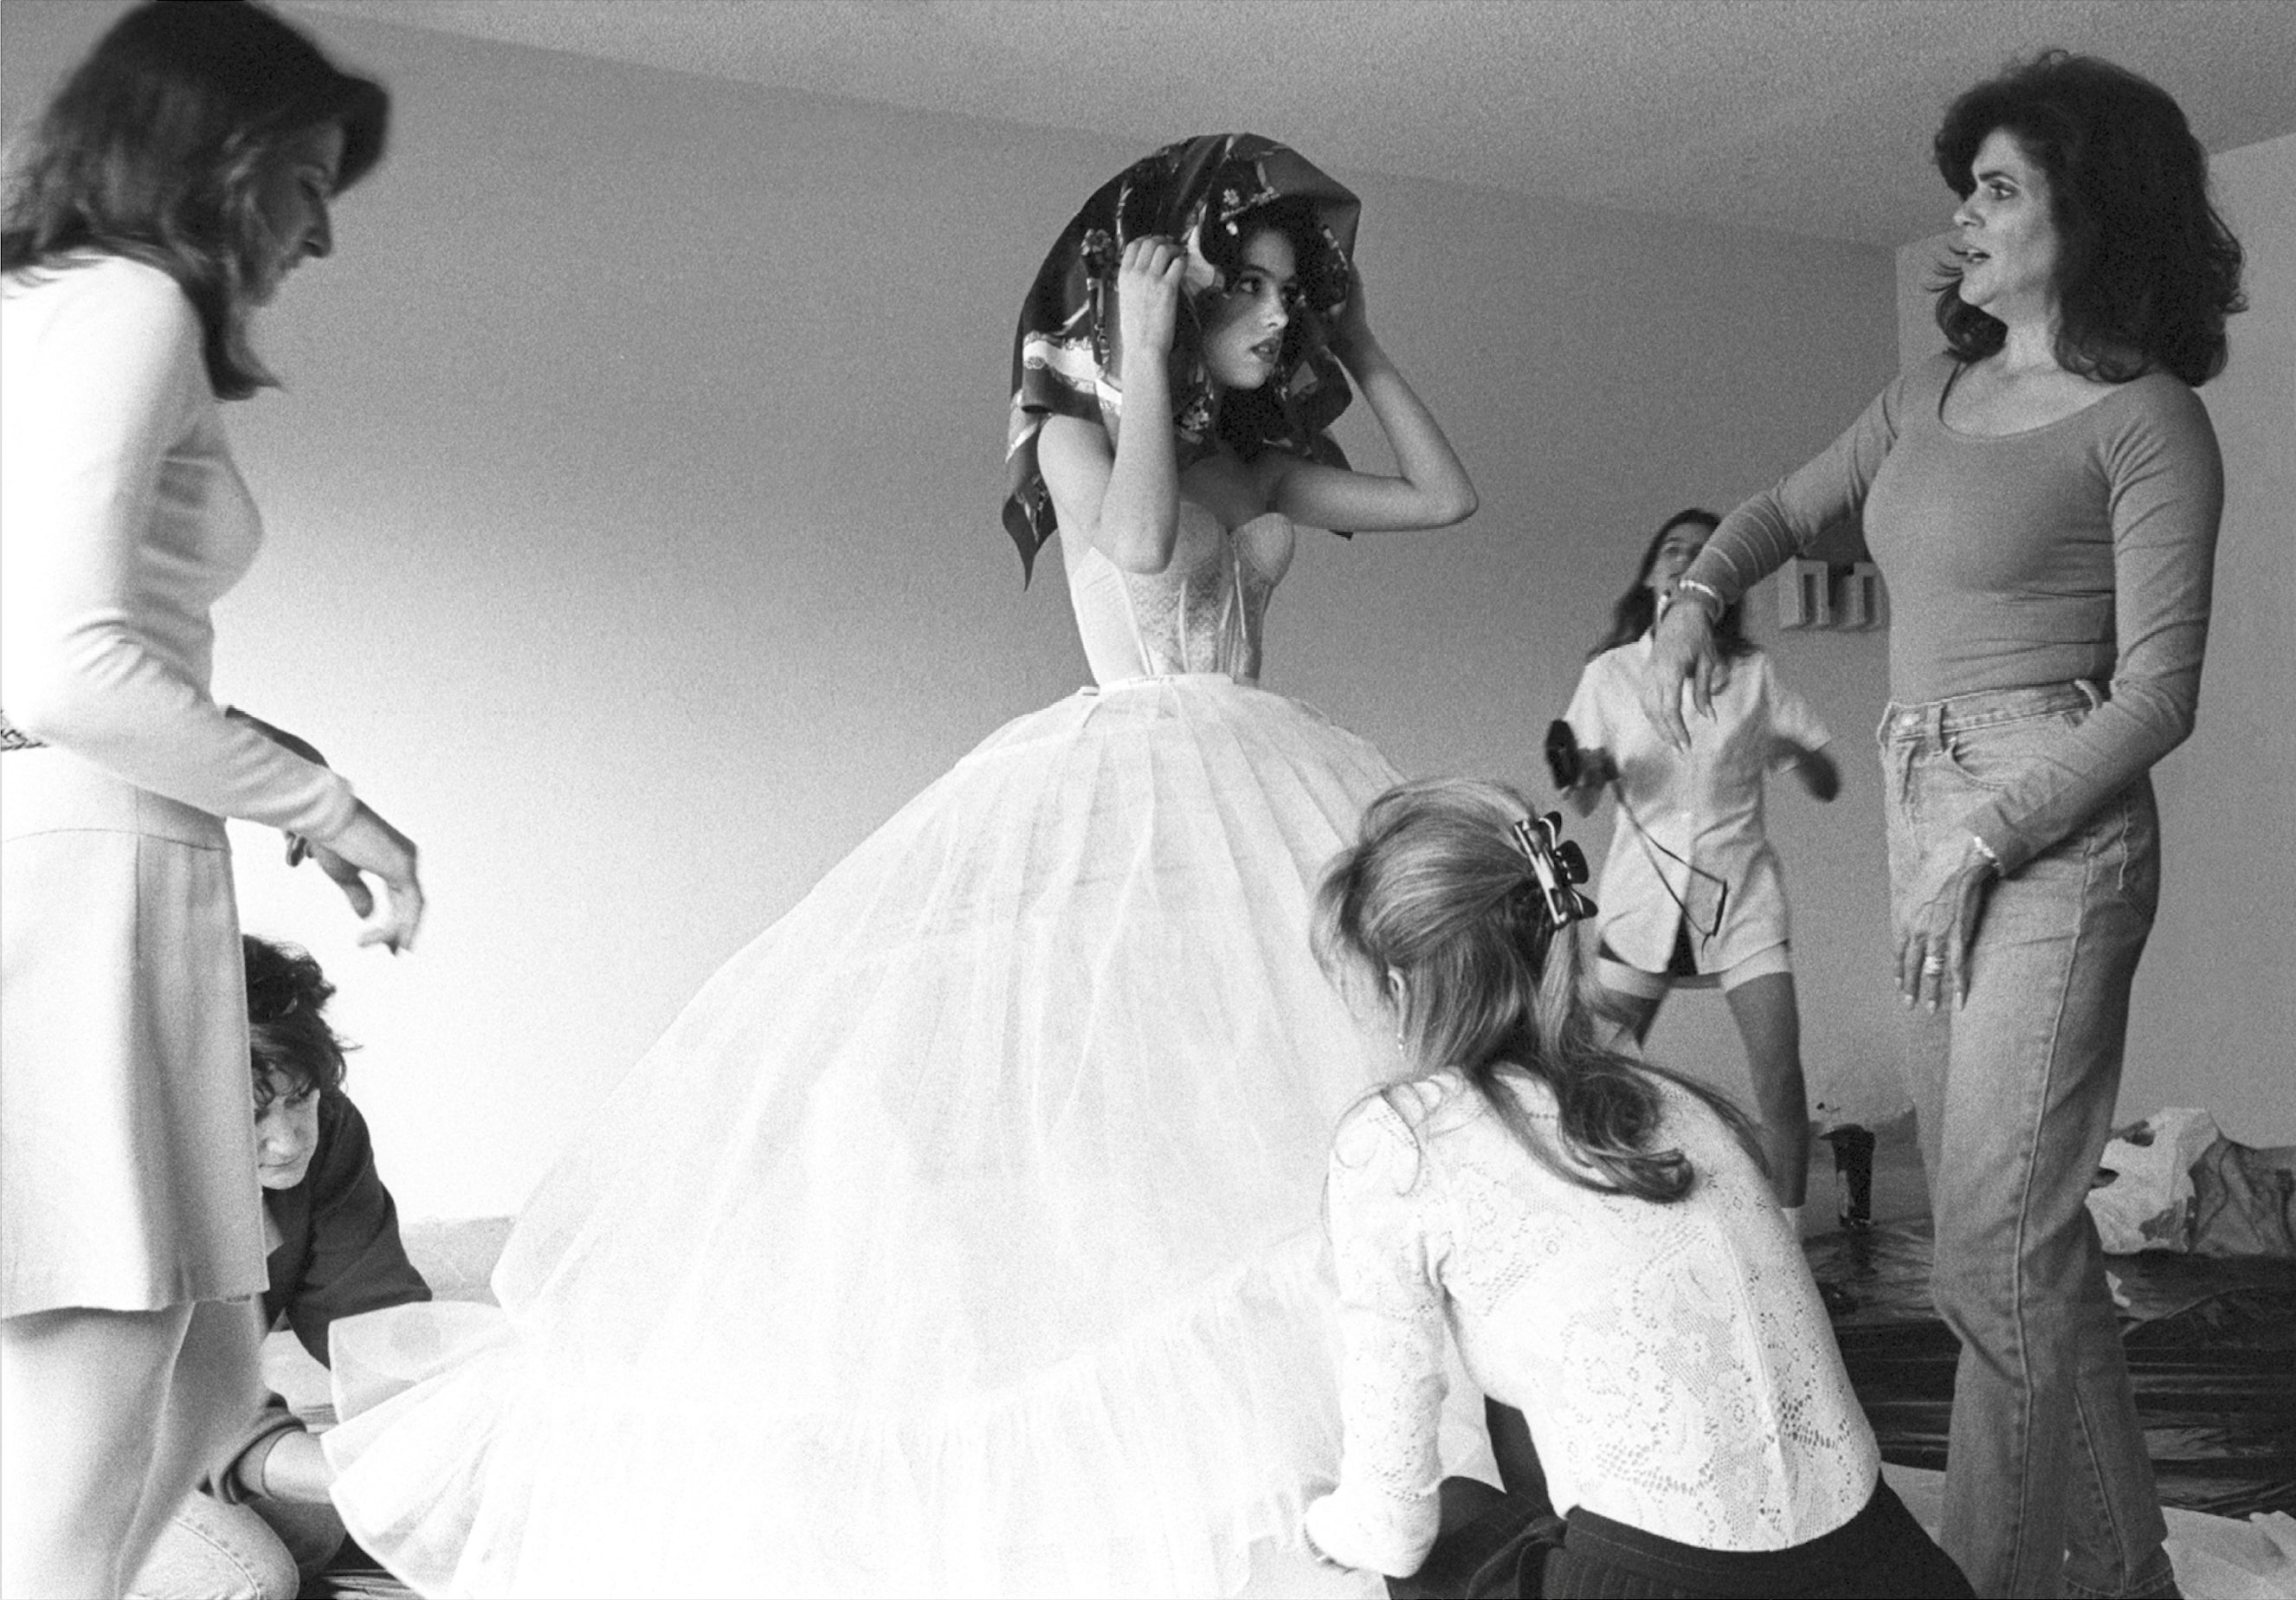 Debutante Getting into Her Dress, Laredo, Texas, 1994